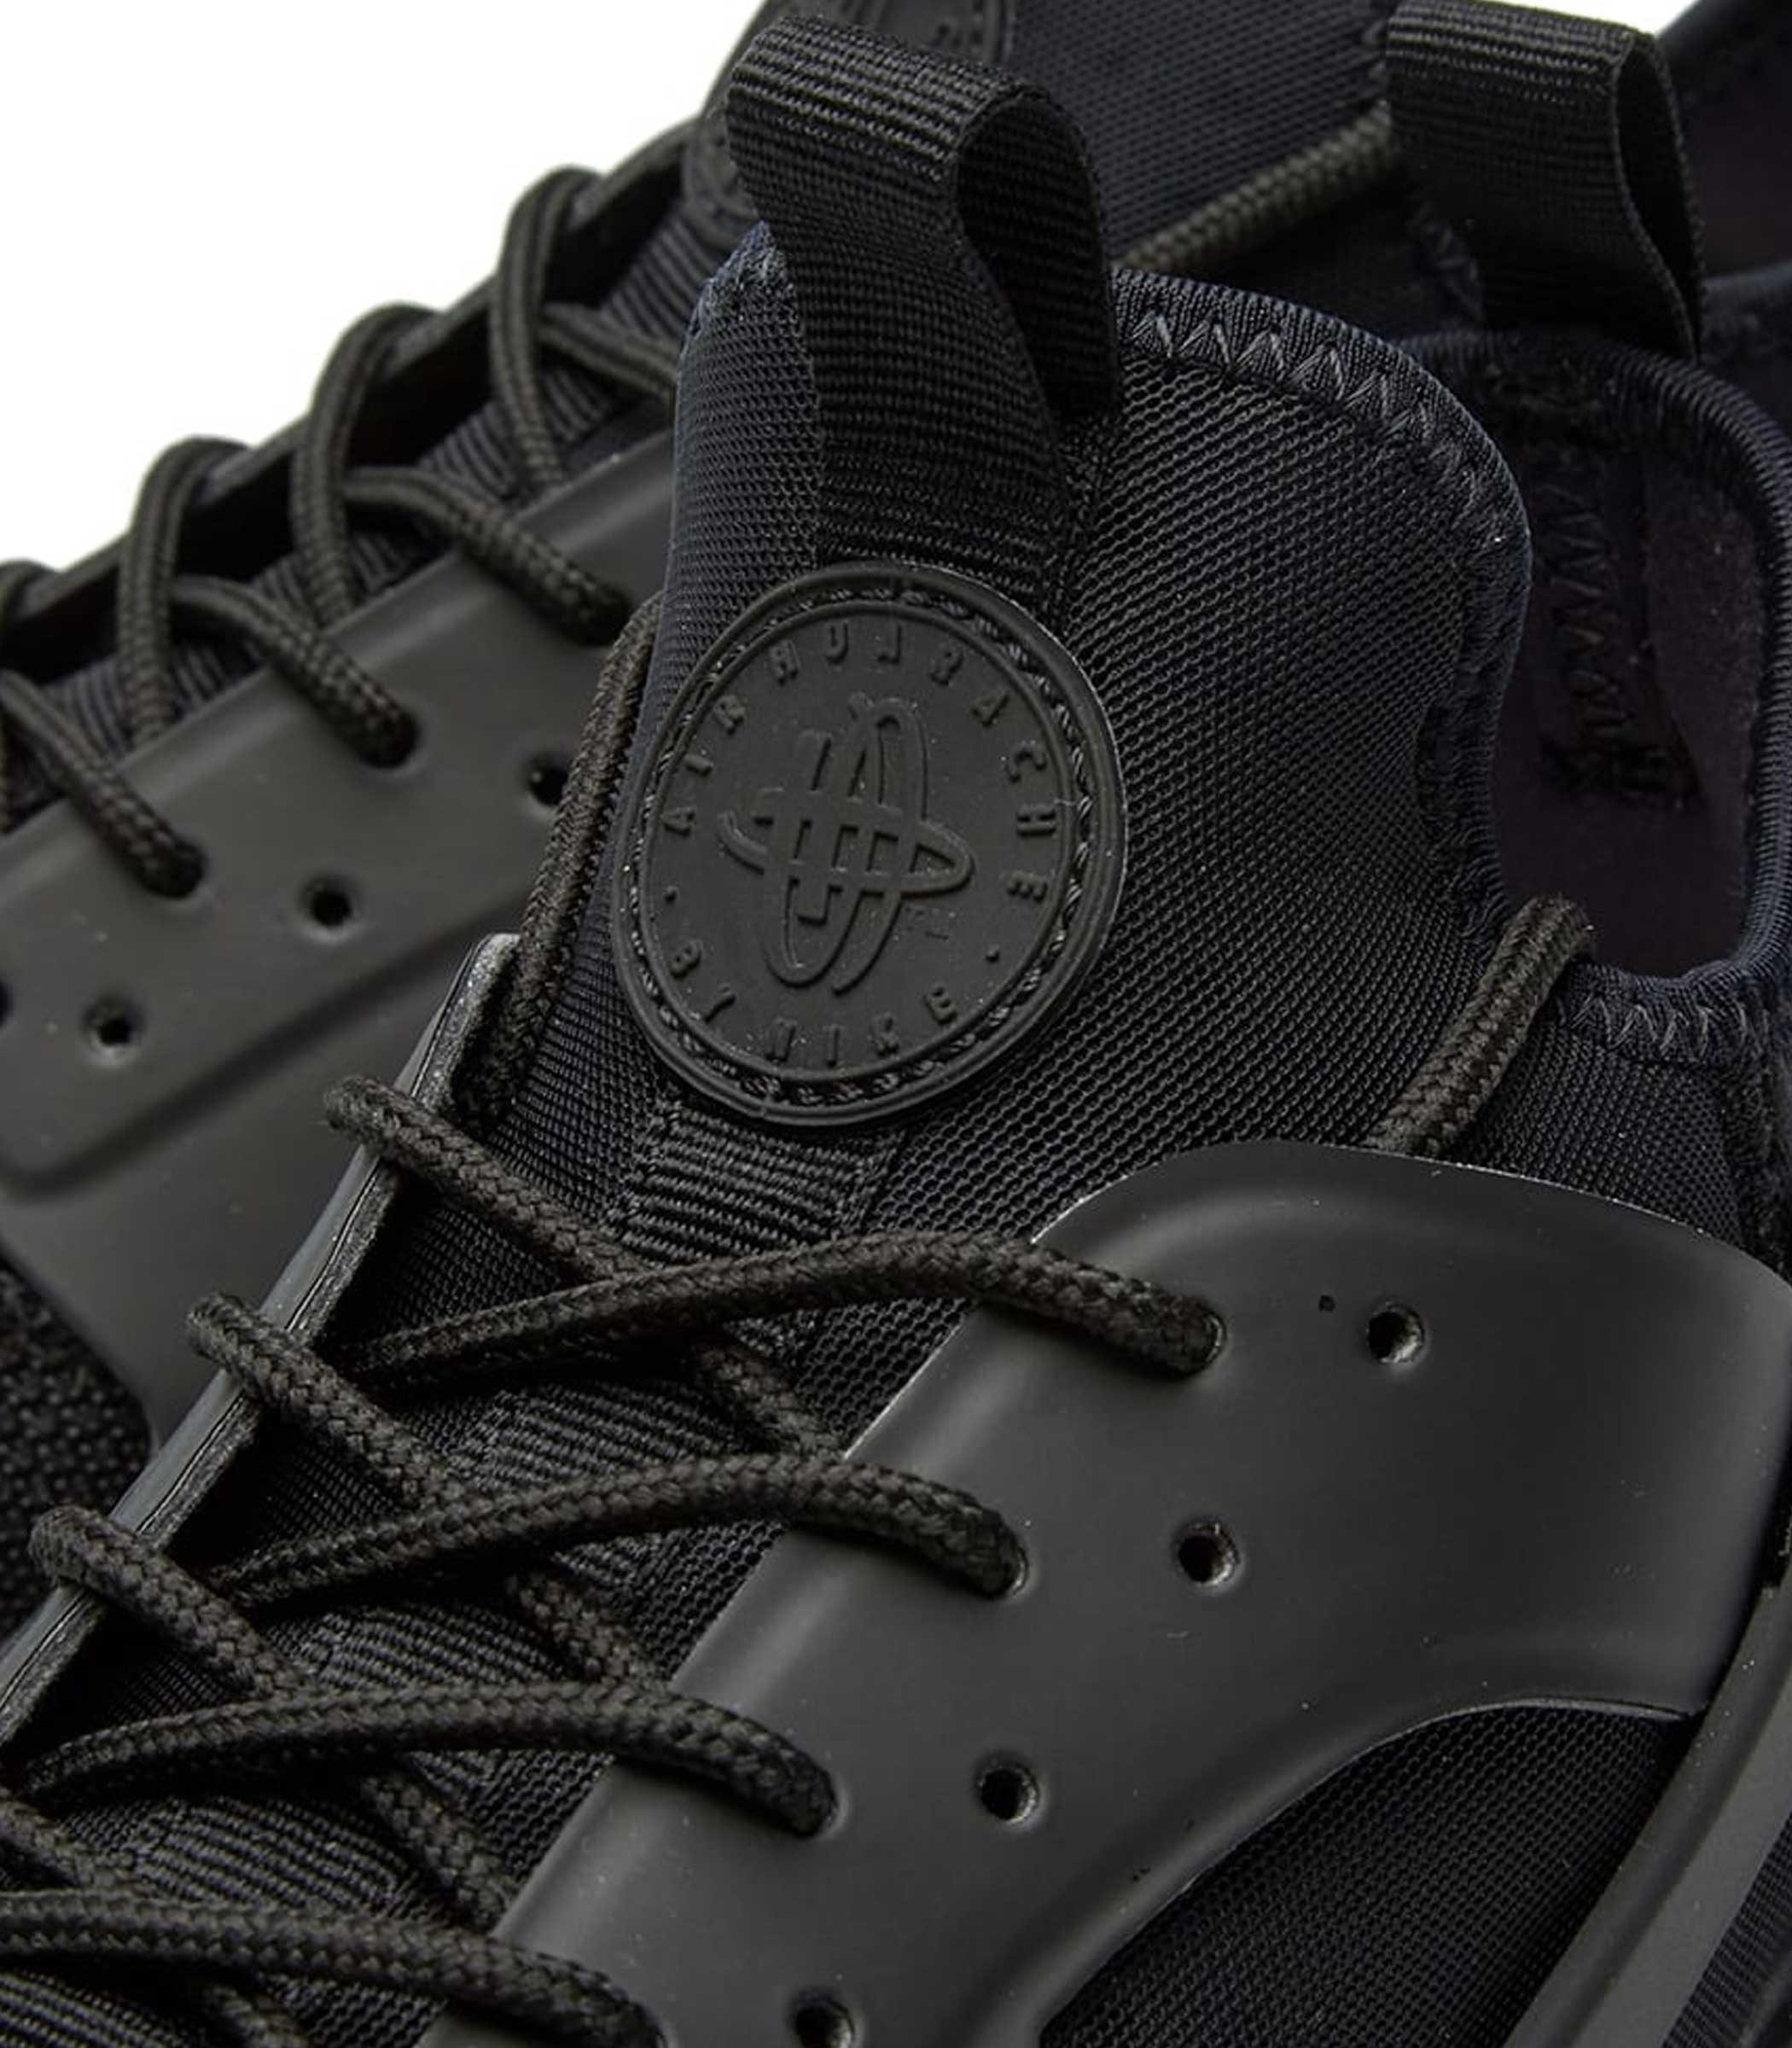 finest selection 0d19b f22d2 ... Scarpe Nike Air Huarache Run Ultra Nero Uomo 819685-002 ...